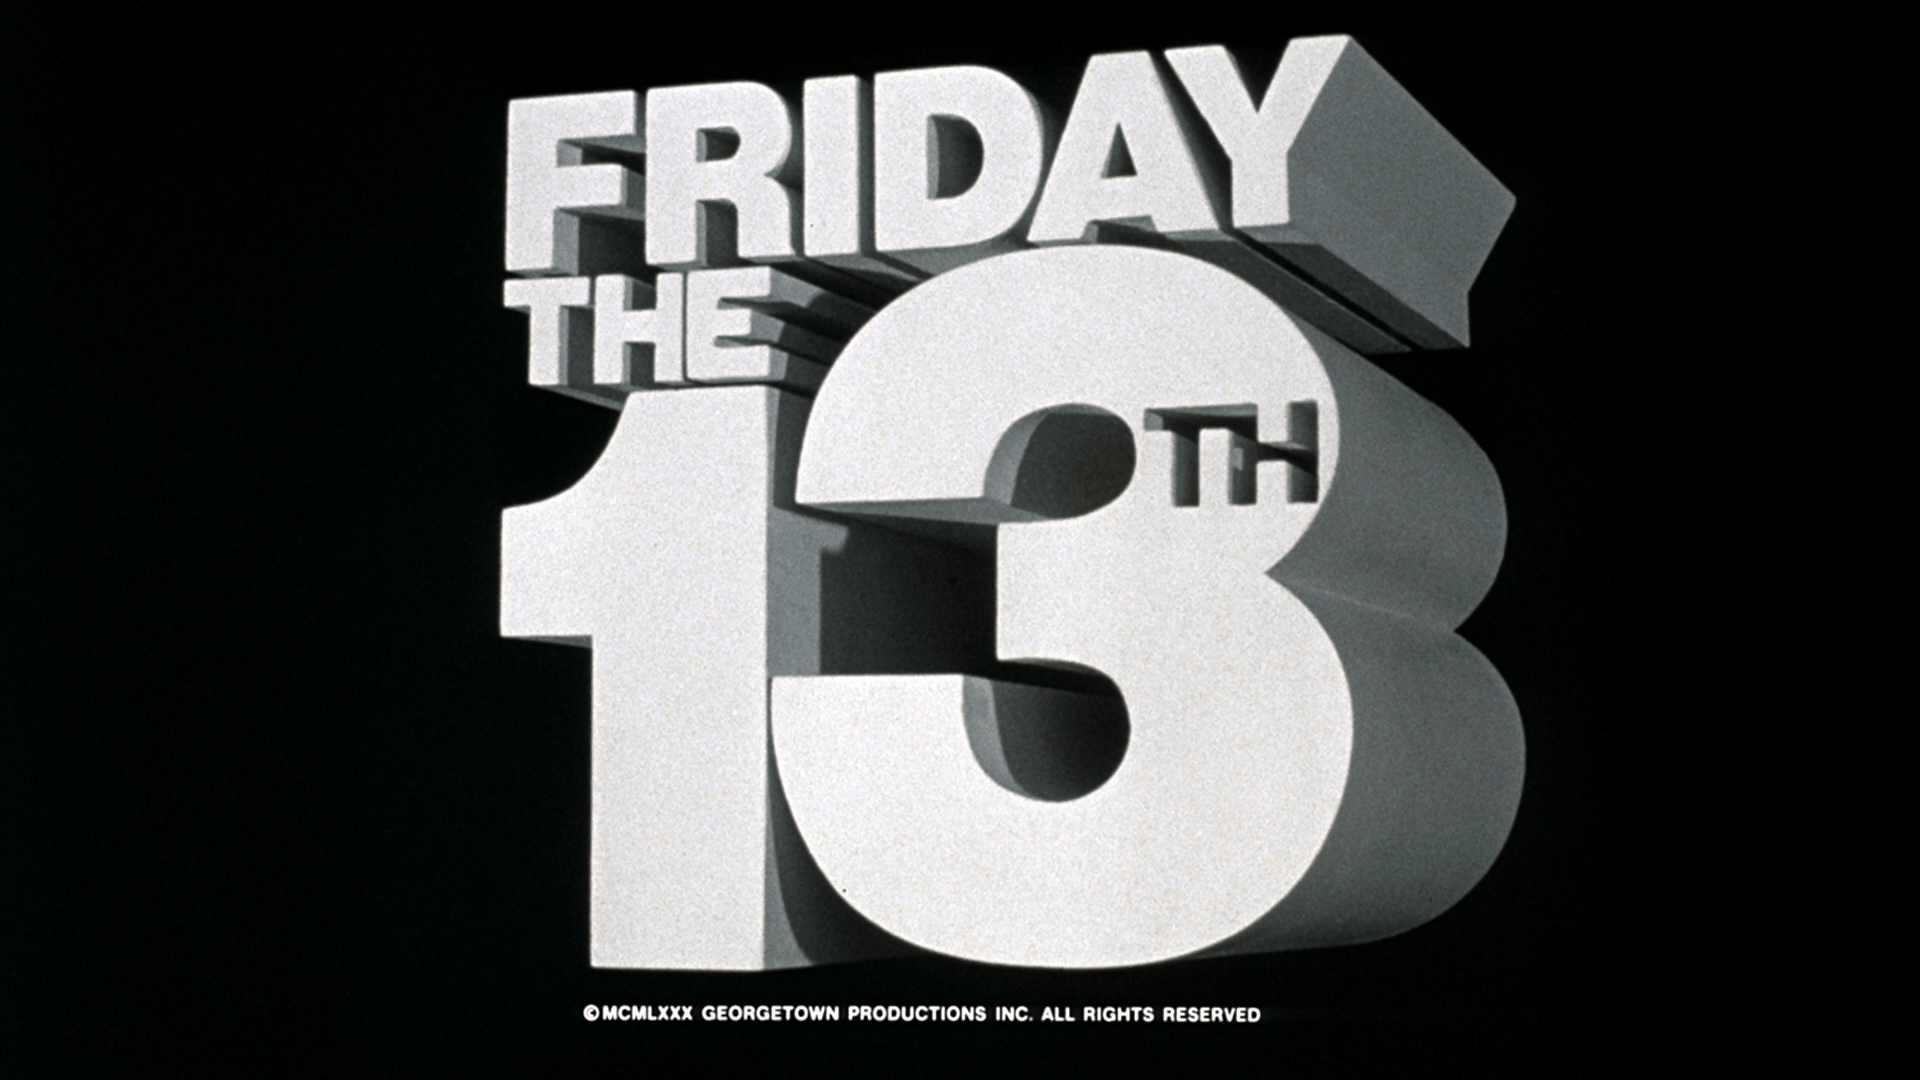 friday the 13th 40th anniversary title